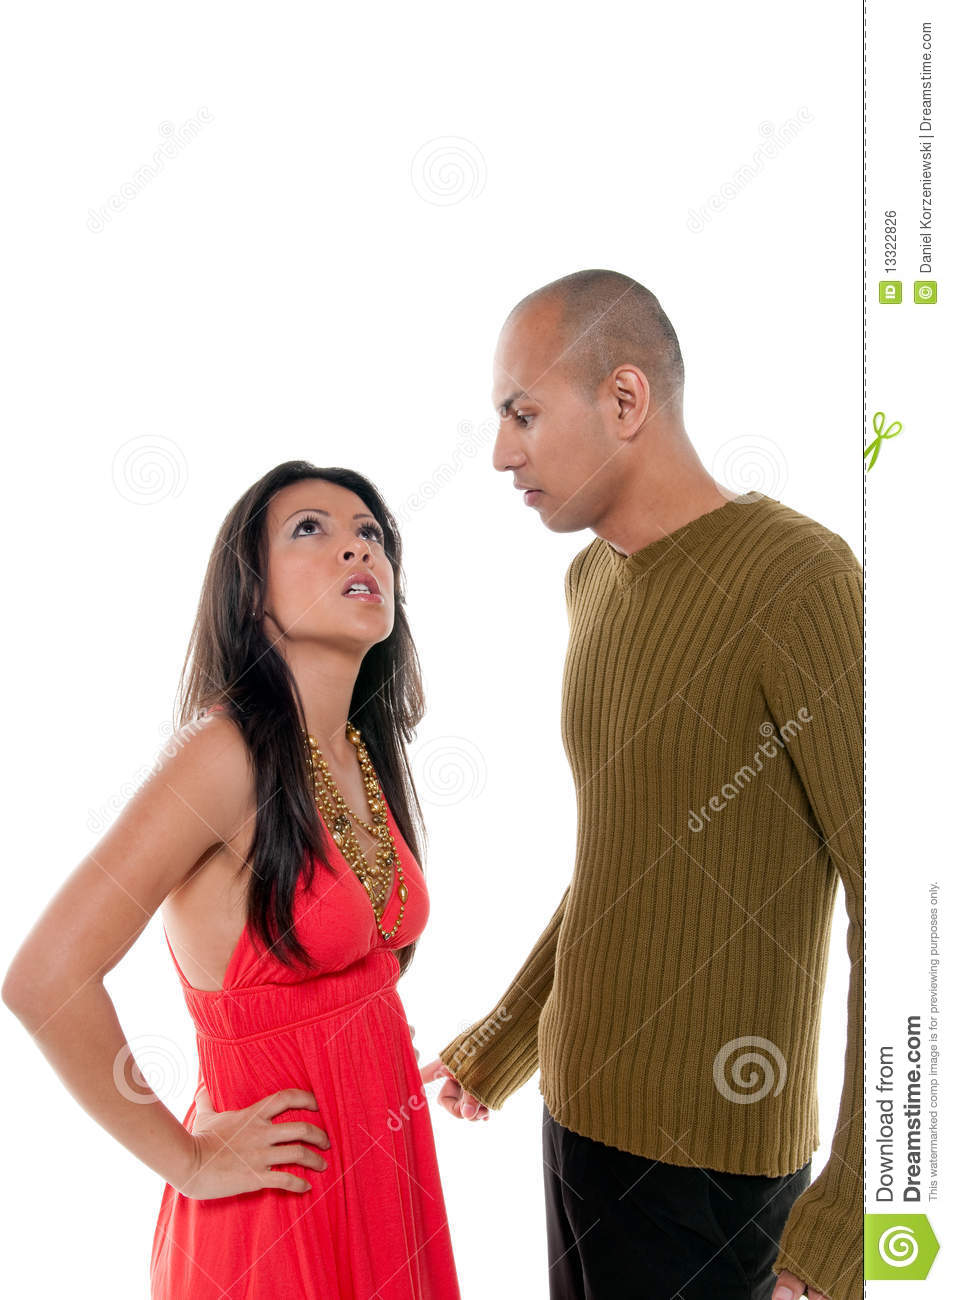 Unhappy Married Man http   www dreamstime com royalty-free-stock-image    Unhappy Married Man